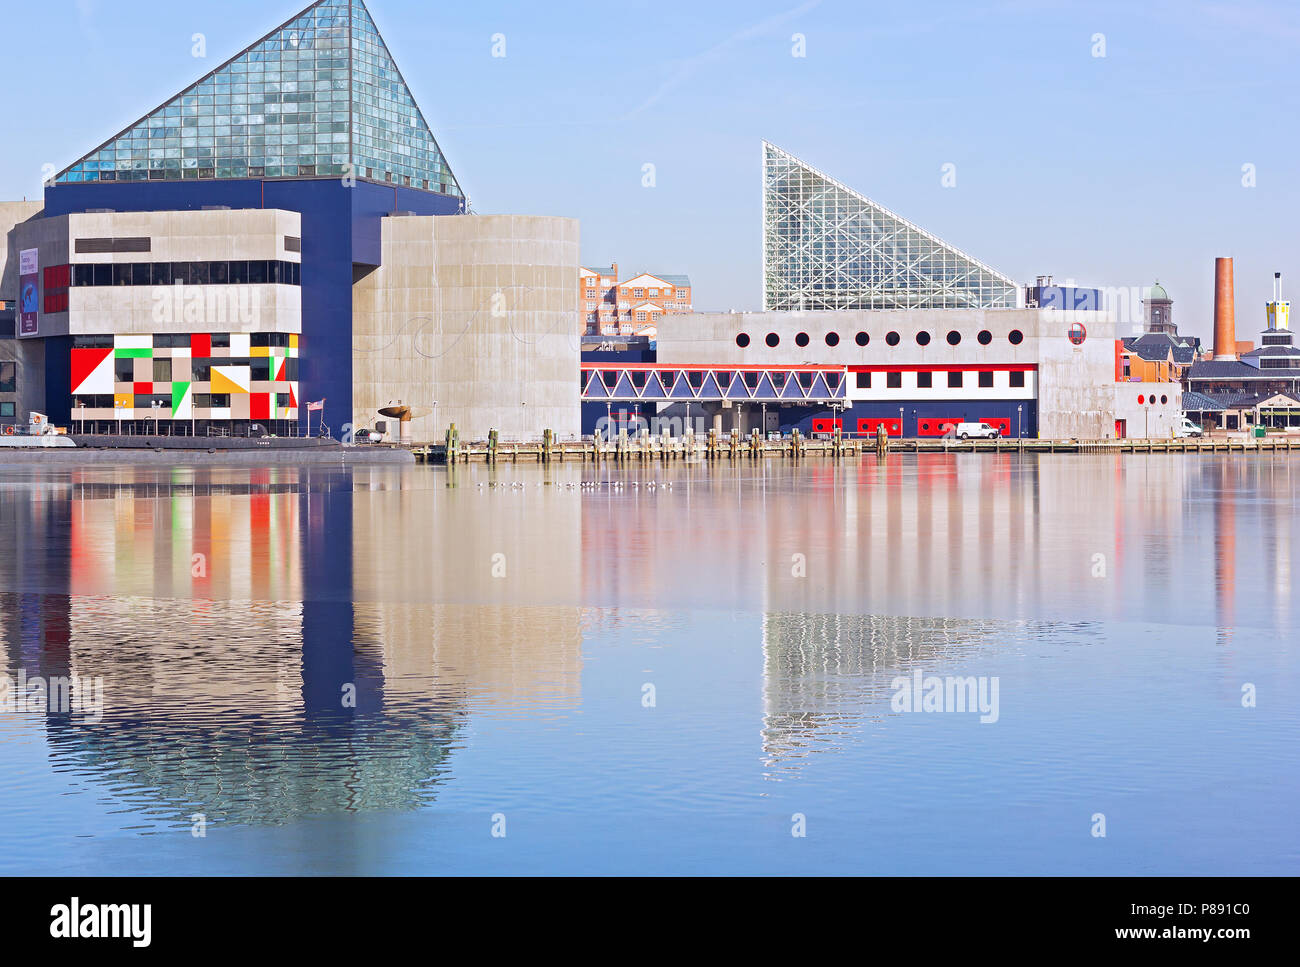 BALTIMORE, USA - JANUARY 31, 2014: National Aquarium and historic submarine Torsk at Inner Harbor on January 31, 2014 in Baltimore, USA. The landmarks - Stock Image